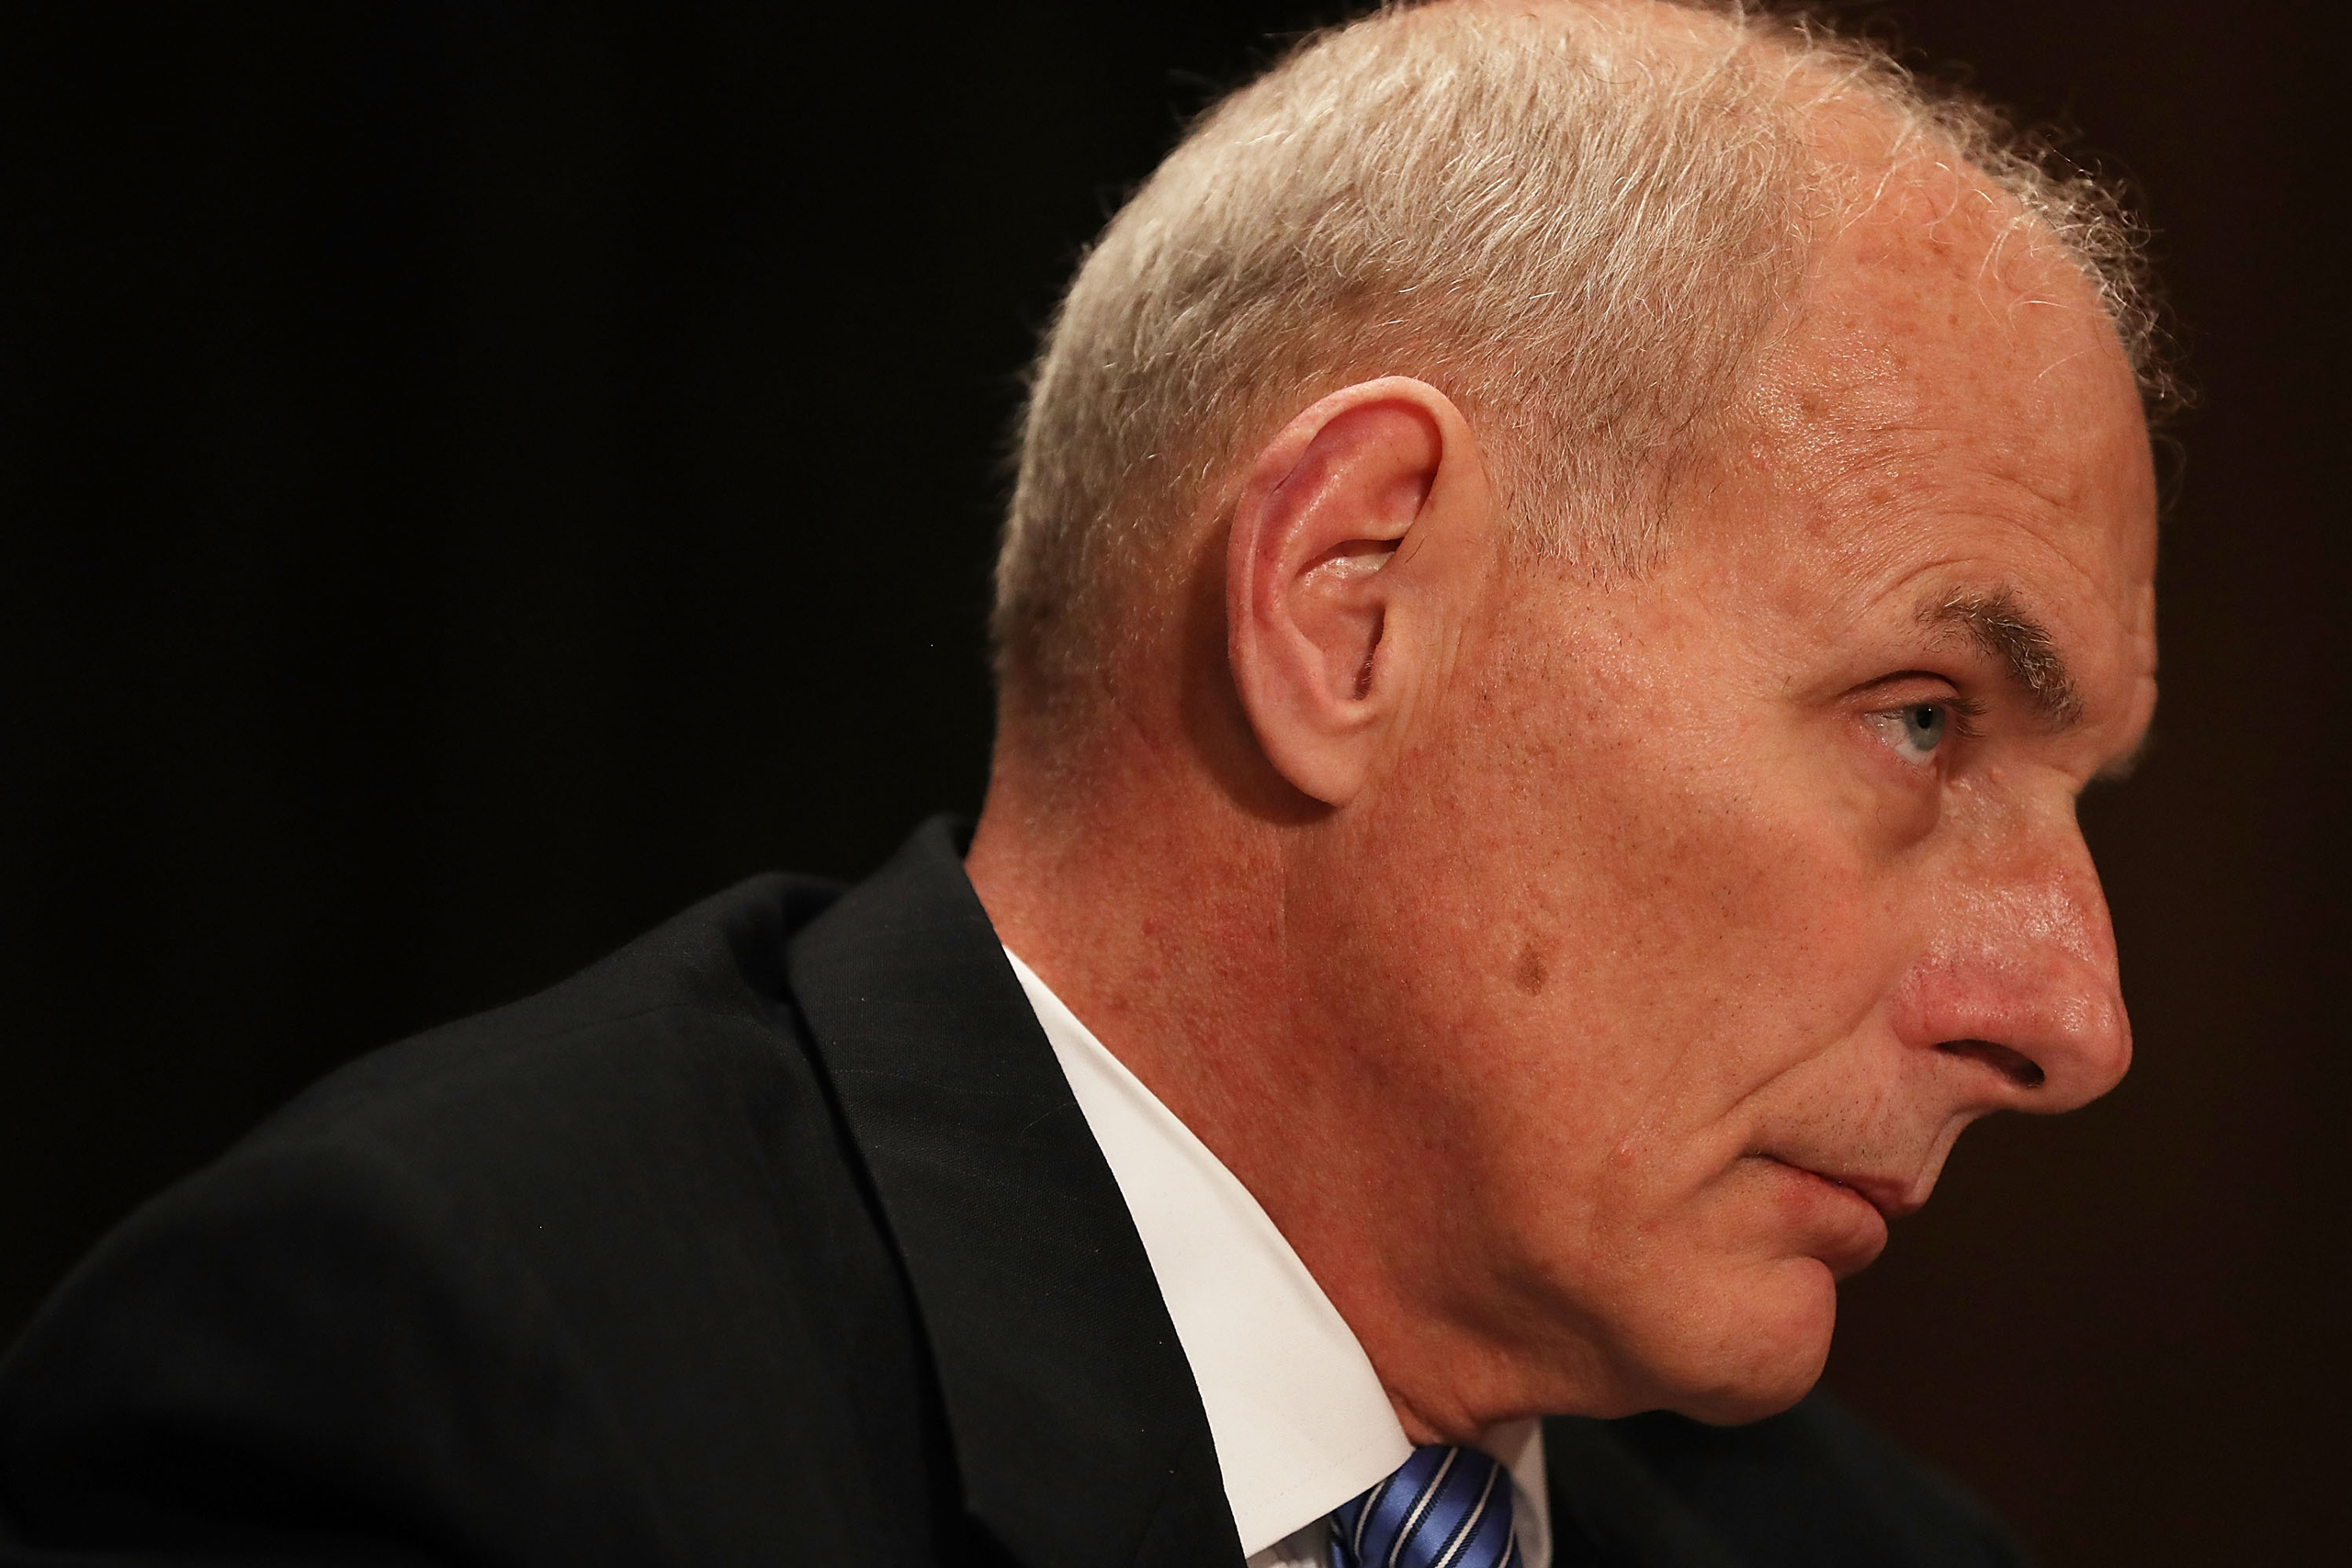 Retired Marine Gen. John Kelly attends his confirmation hearing in front of the Senate Homeland Security and Governmental Affairs Committee to run the Department of Homeland Security in Washington on Jan.10, 2017.